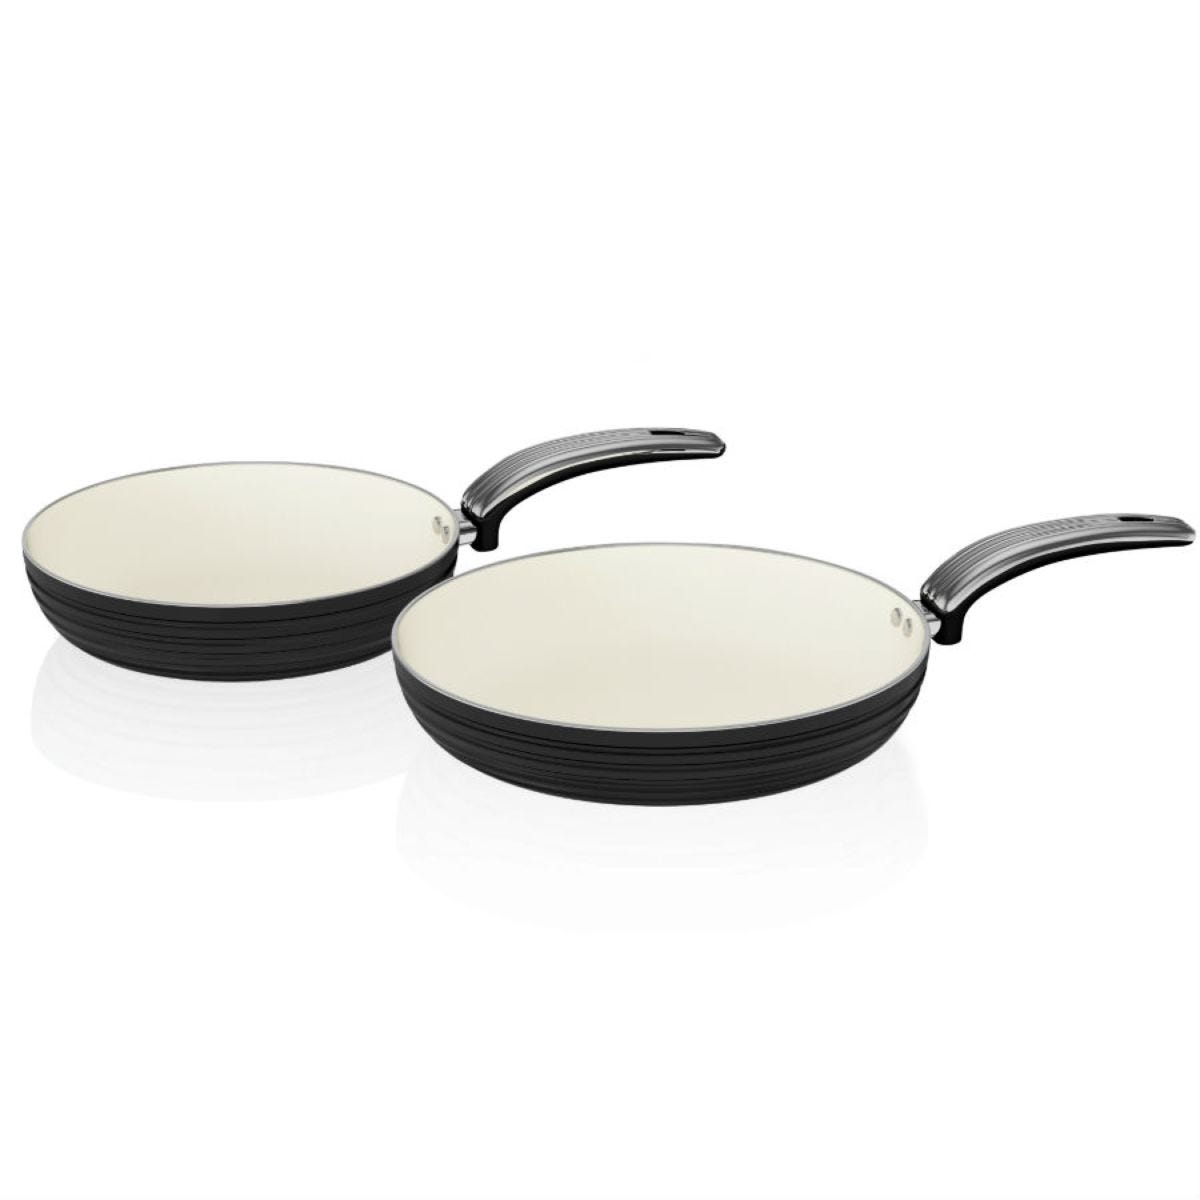 Swan Retro 2 Piece Frying Pan Set - Black